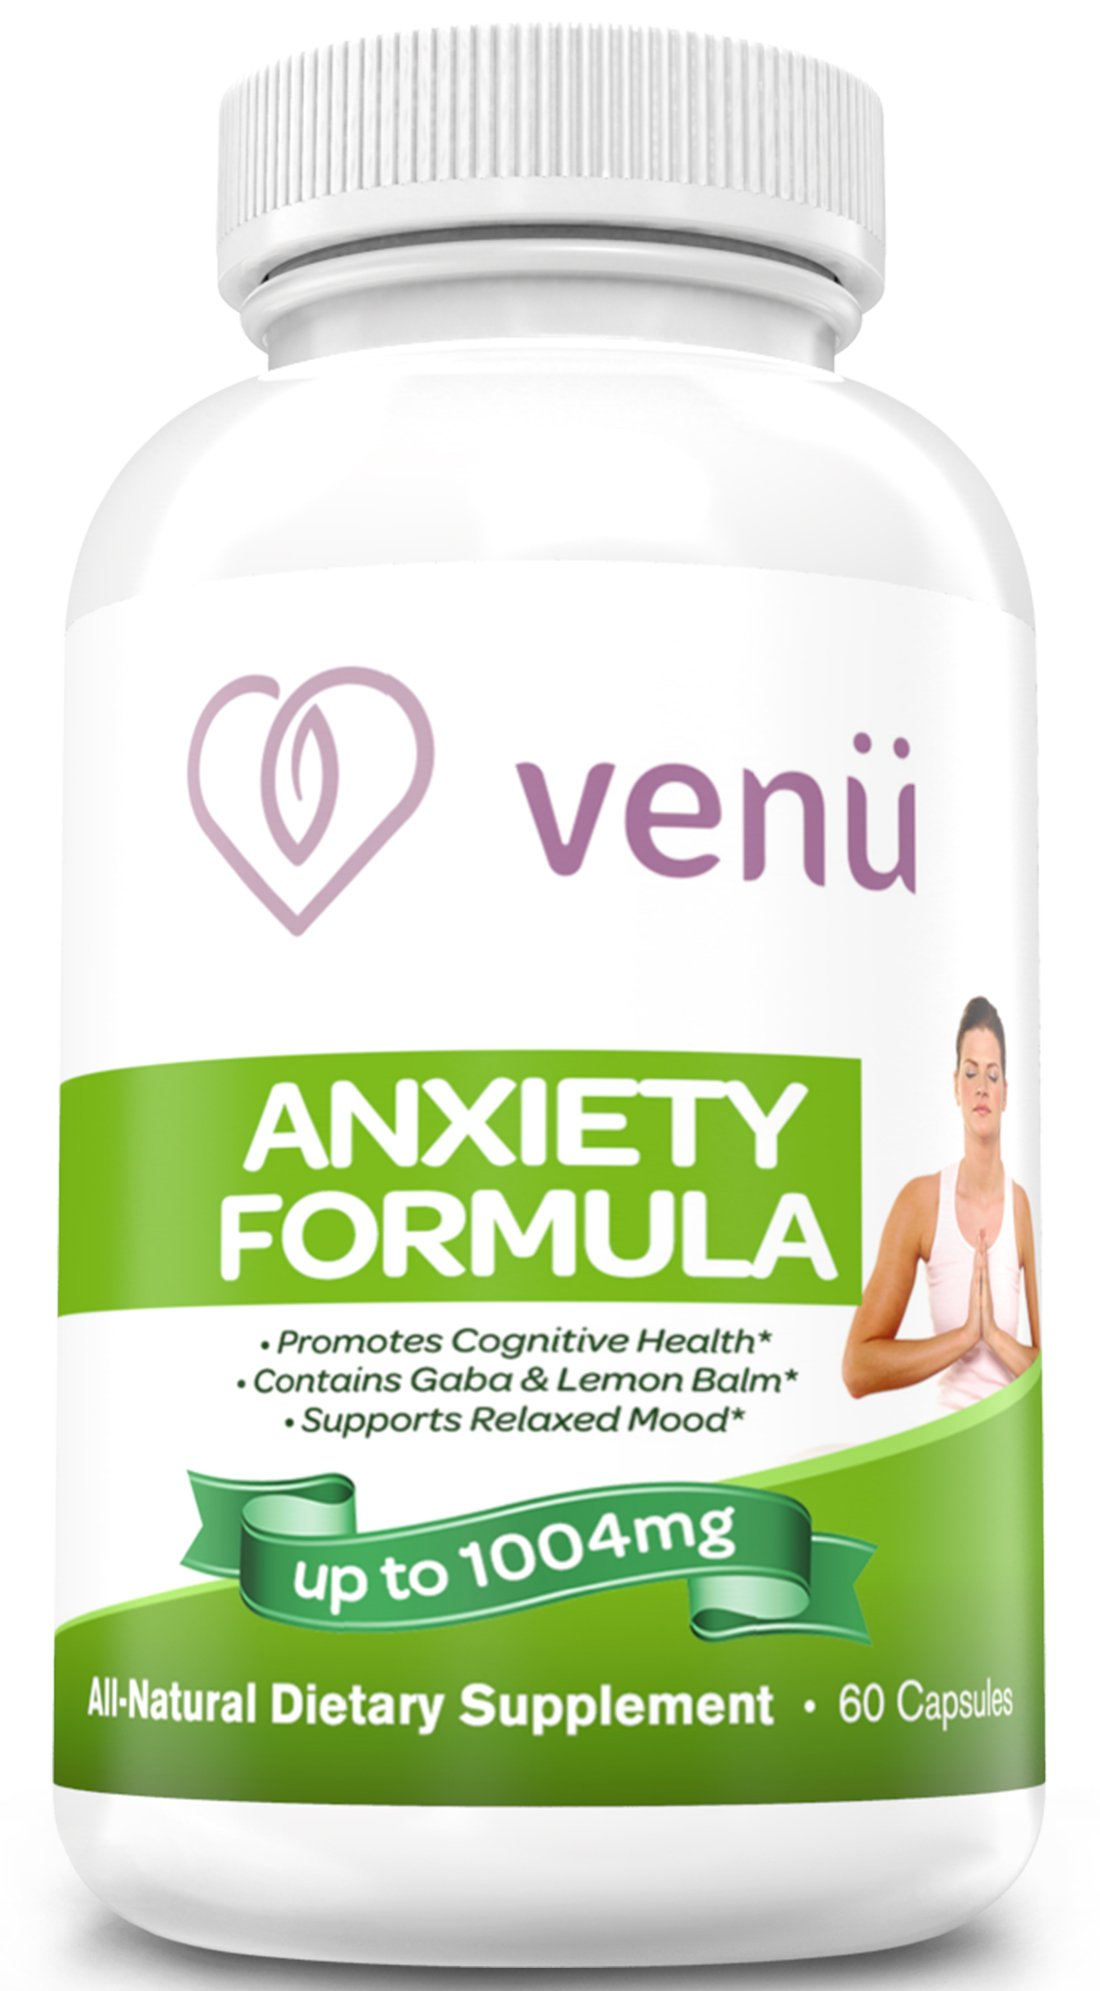 Venu Beauty Anti-Anxiety Supplement Helps Support Anxiety Stress Relief, All-Natural, 1-Month Supply 60, Made in USA